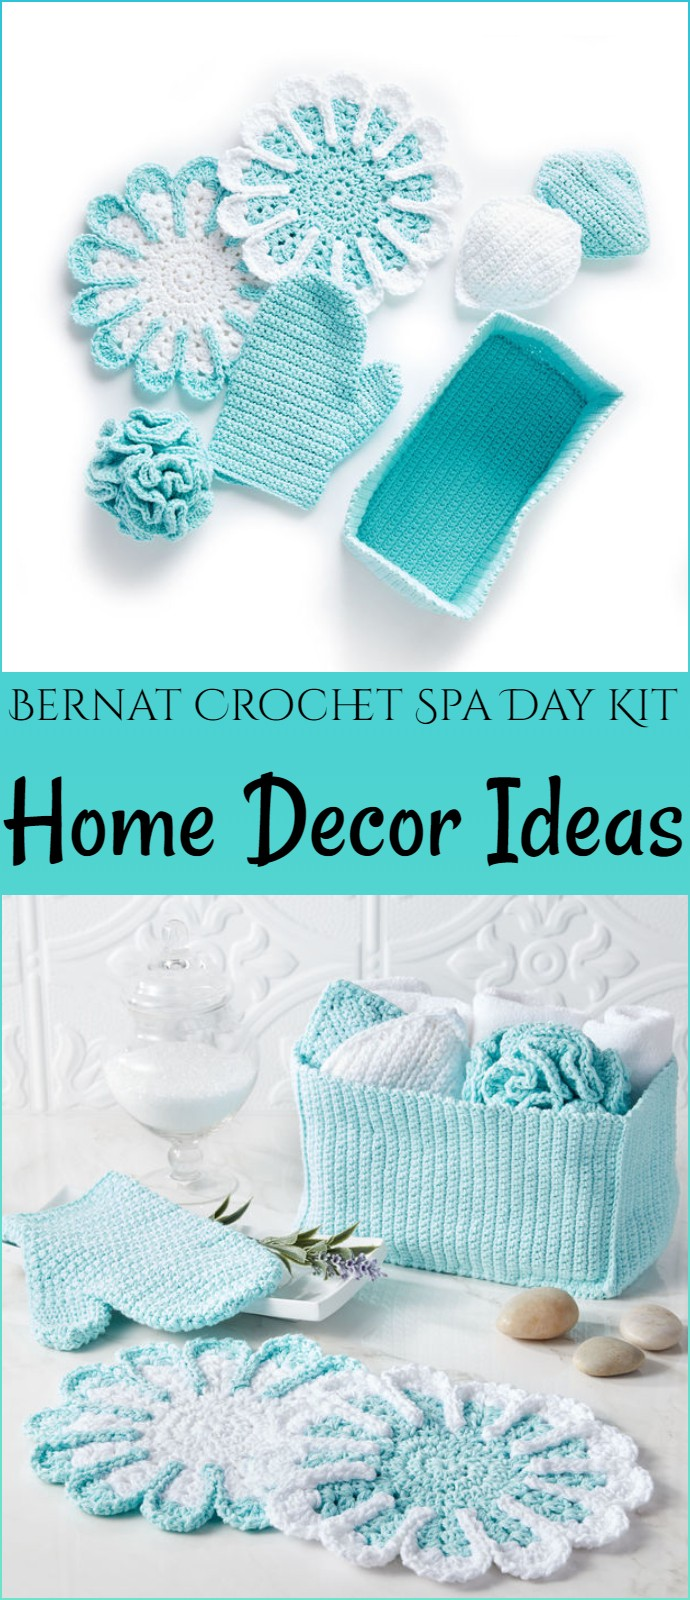 Bernat Crochet Spa Day Kit Home Decor Ideas